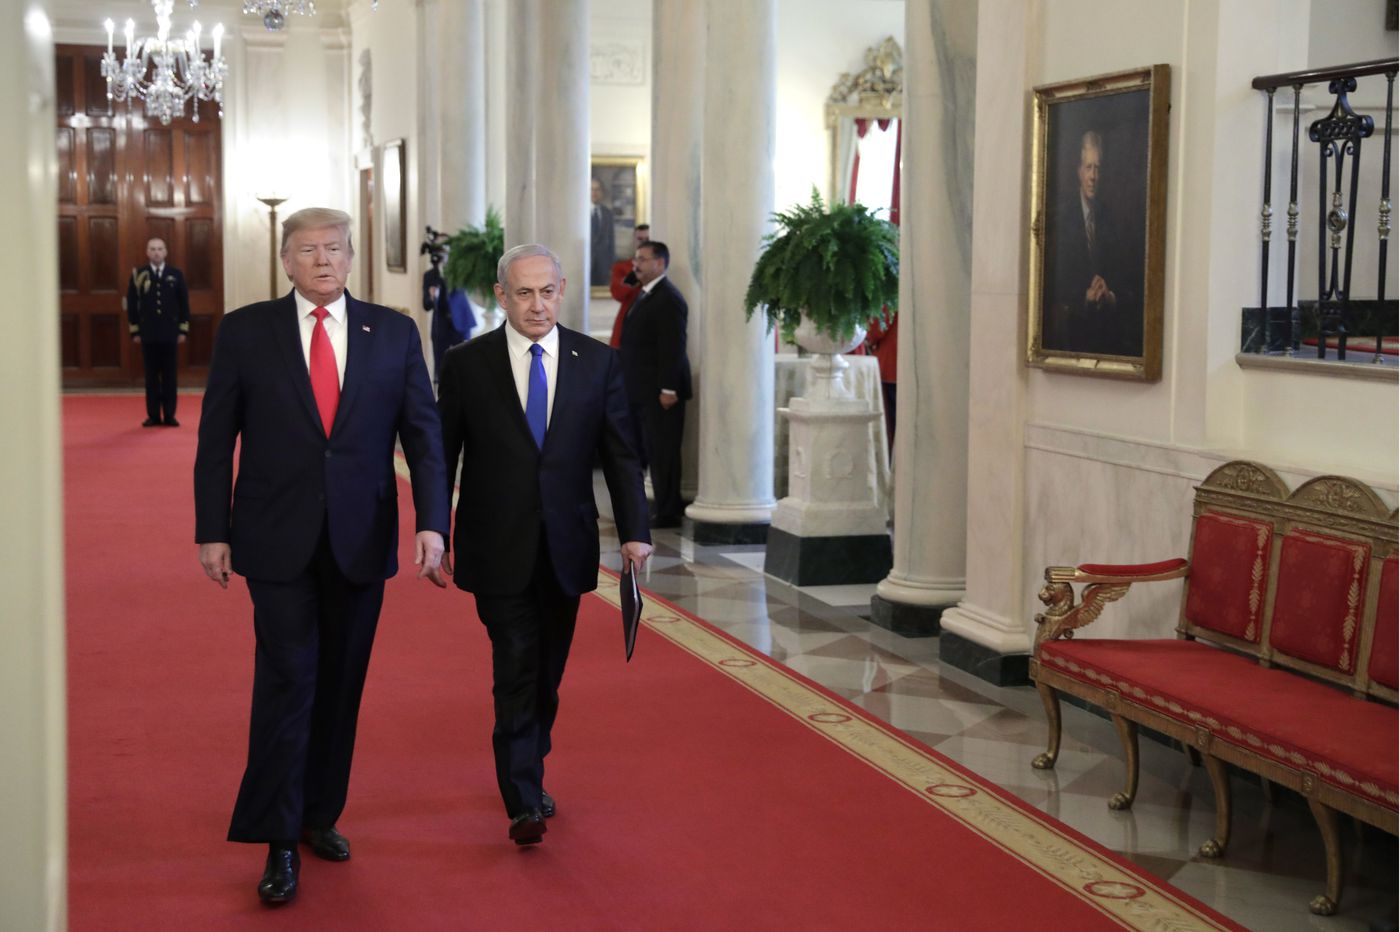 Trump's Mideast plan aimed at U.S. and Israeli elections, not peace | Trudy Rubin